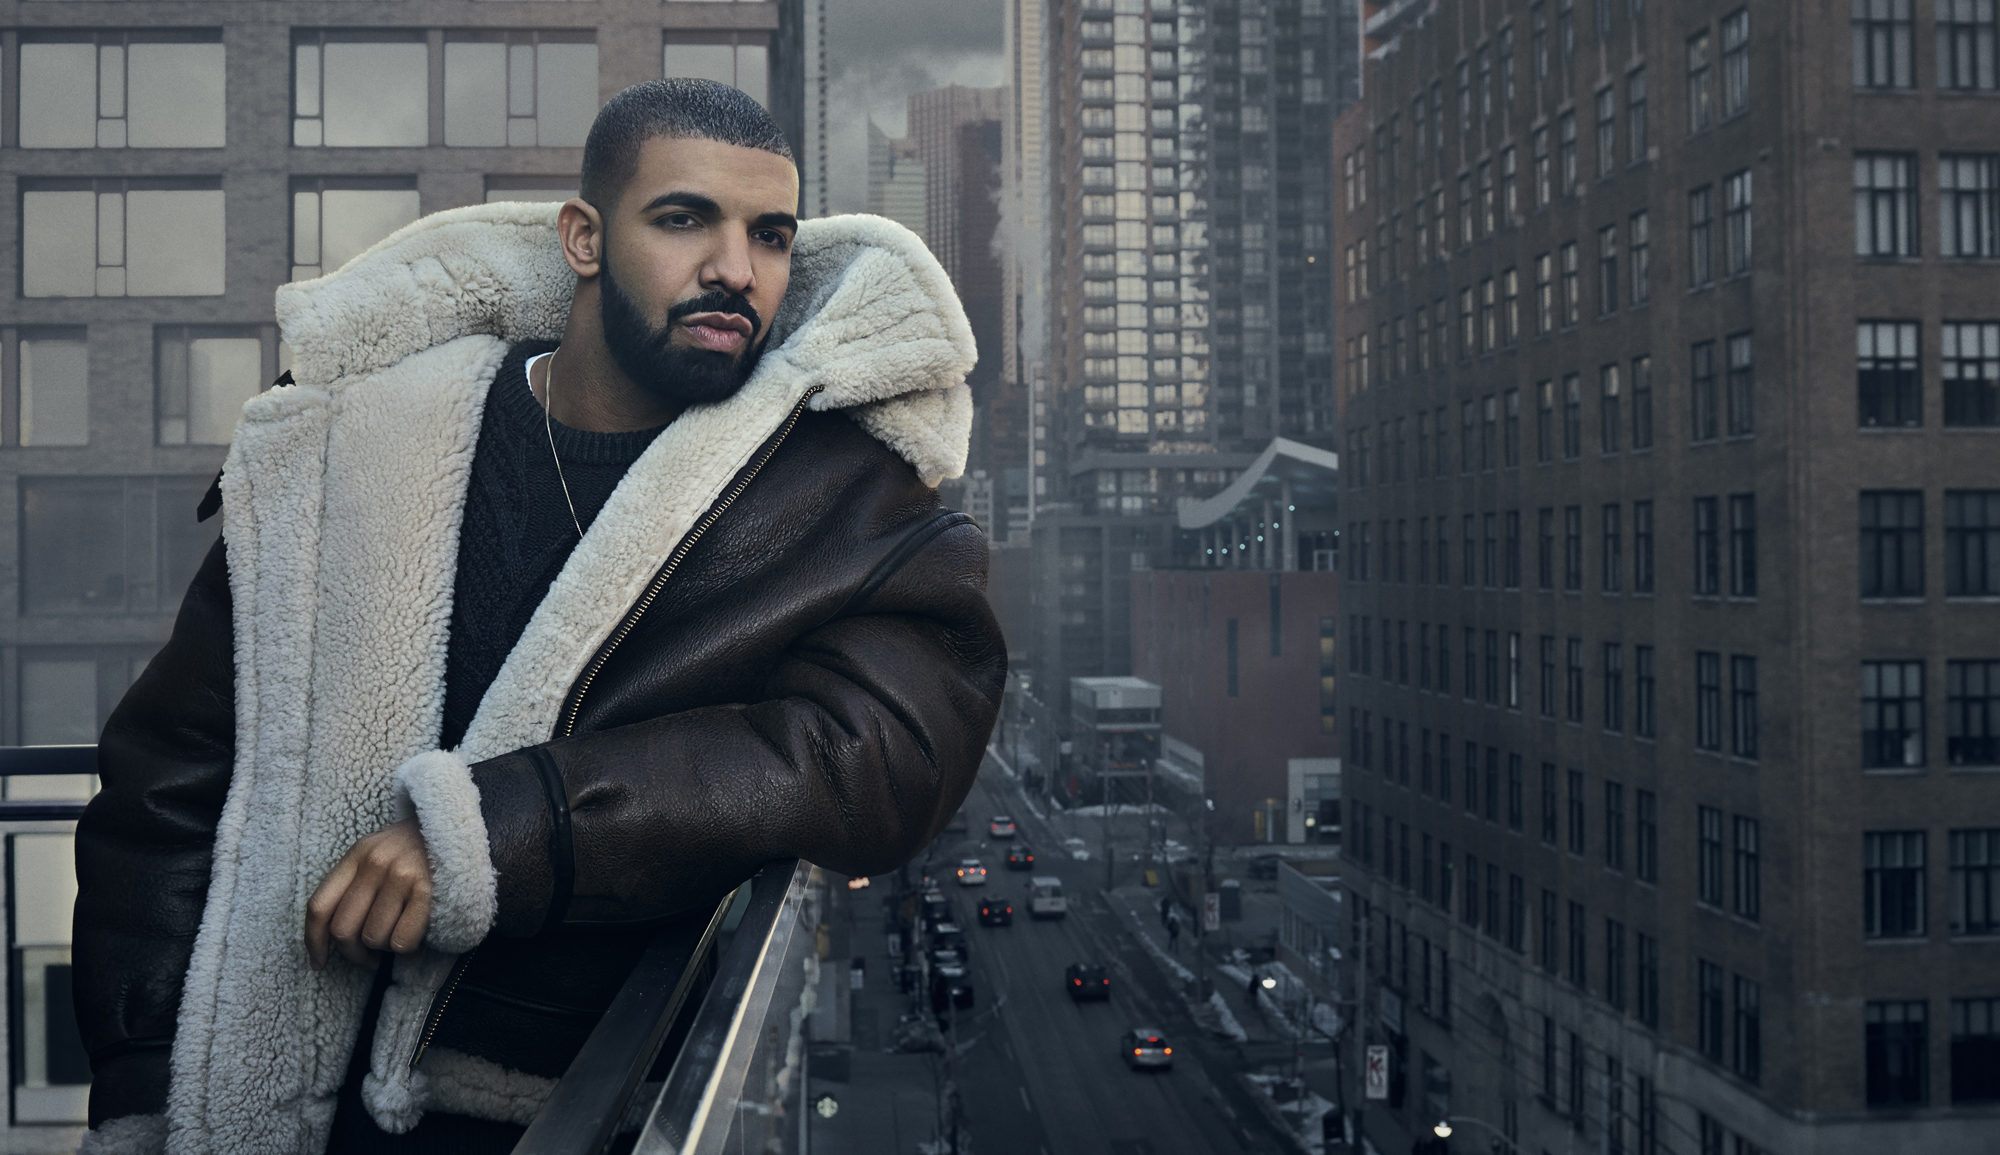 Drake wearing an oversized leather, shearling-lined coat on a balcony overlooking a busy city street